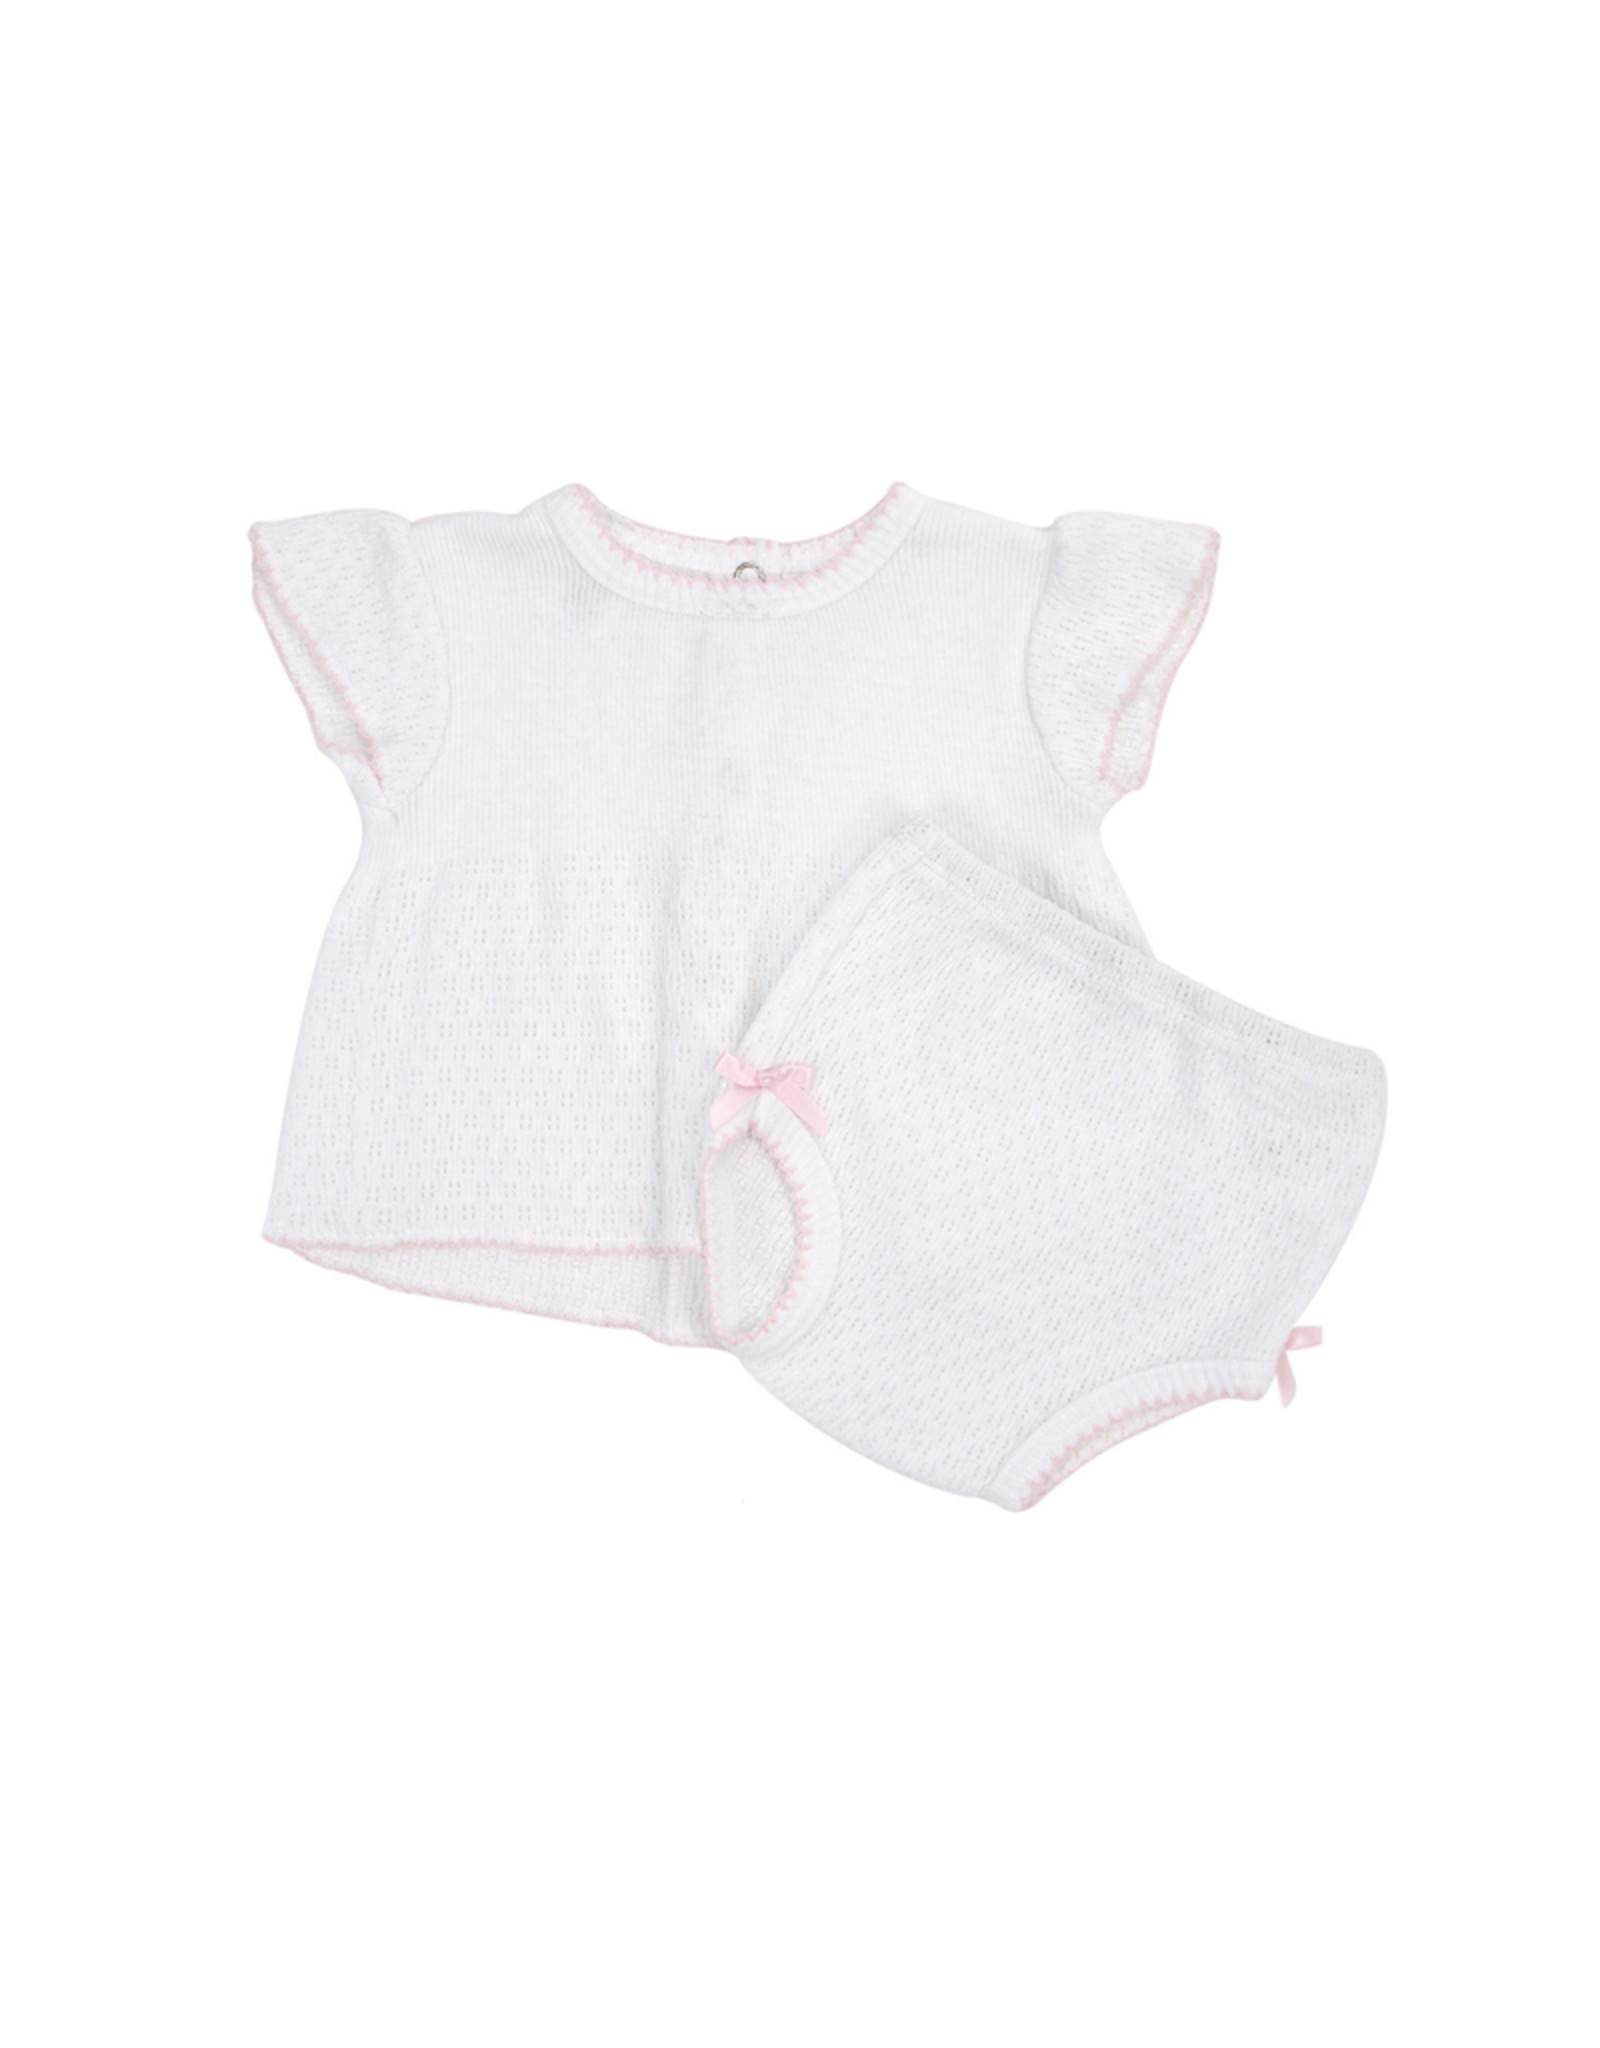 Paty Paty Diaper Set With Pink Trim